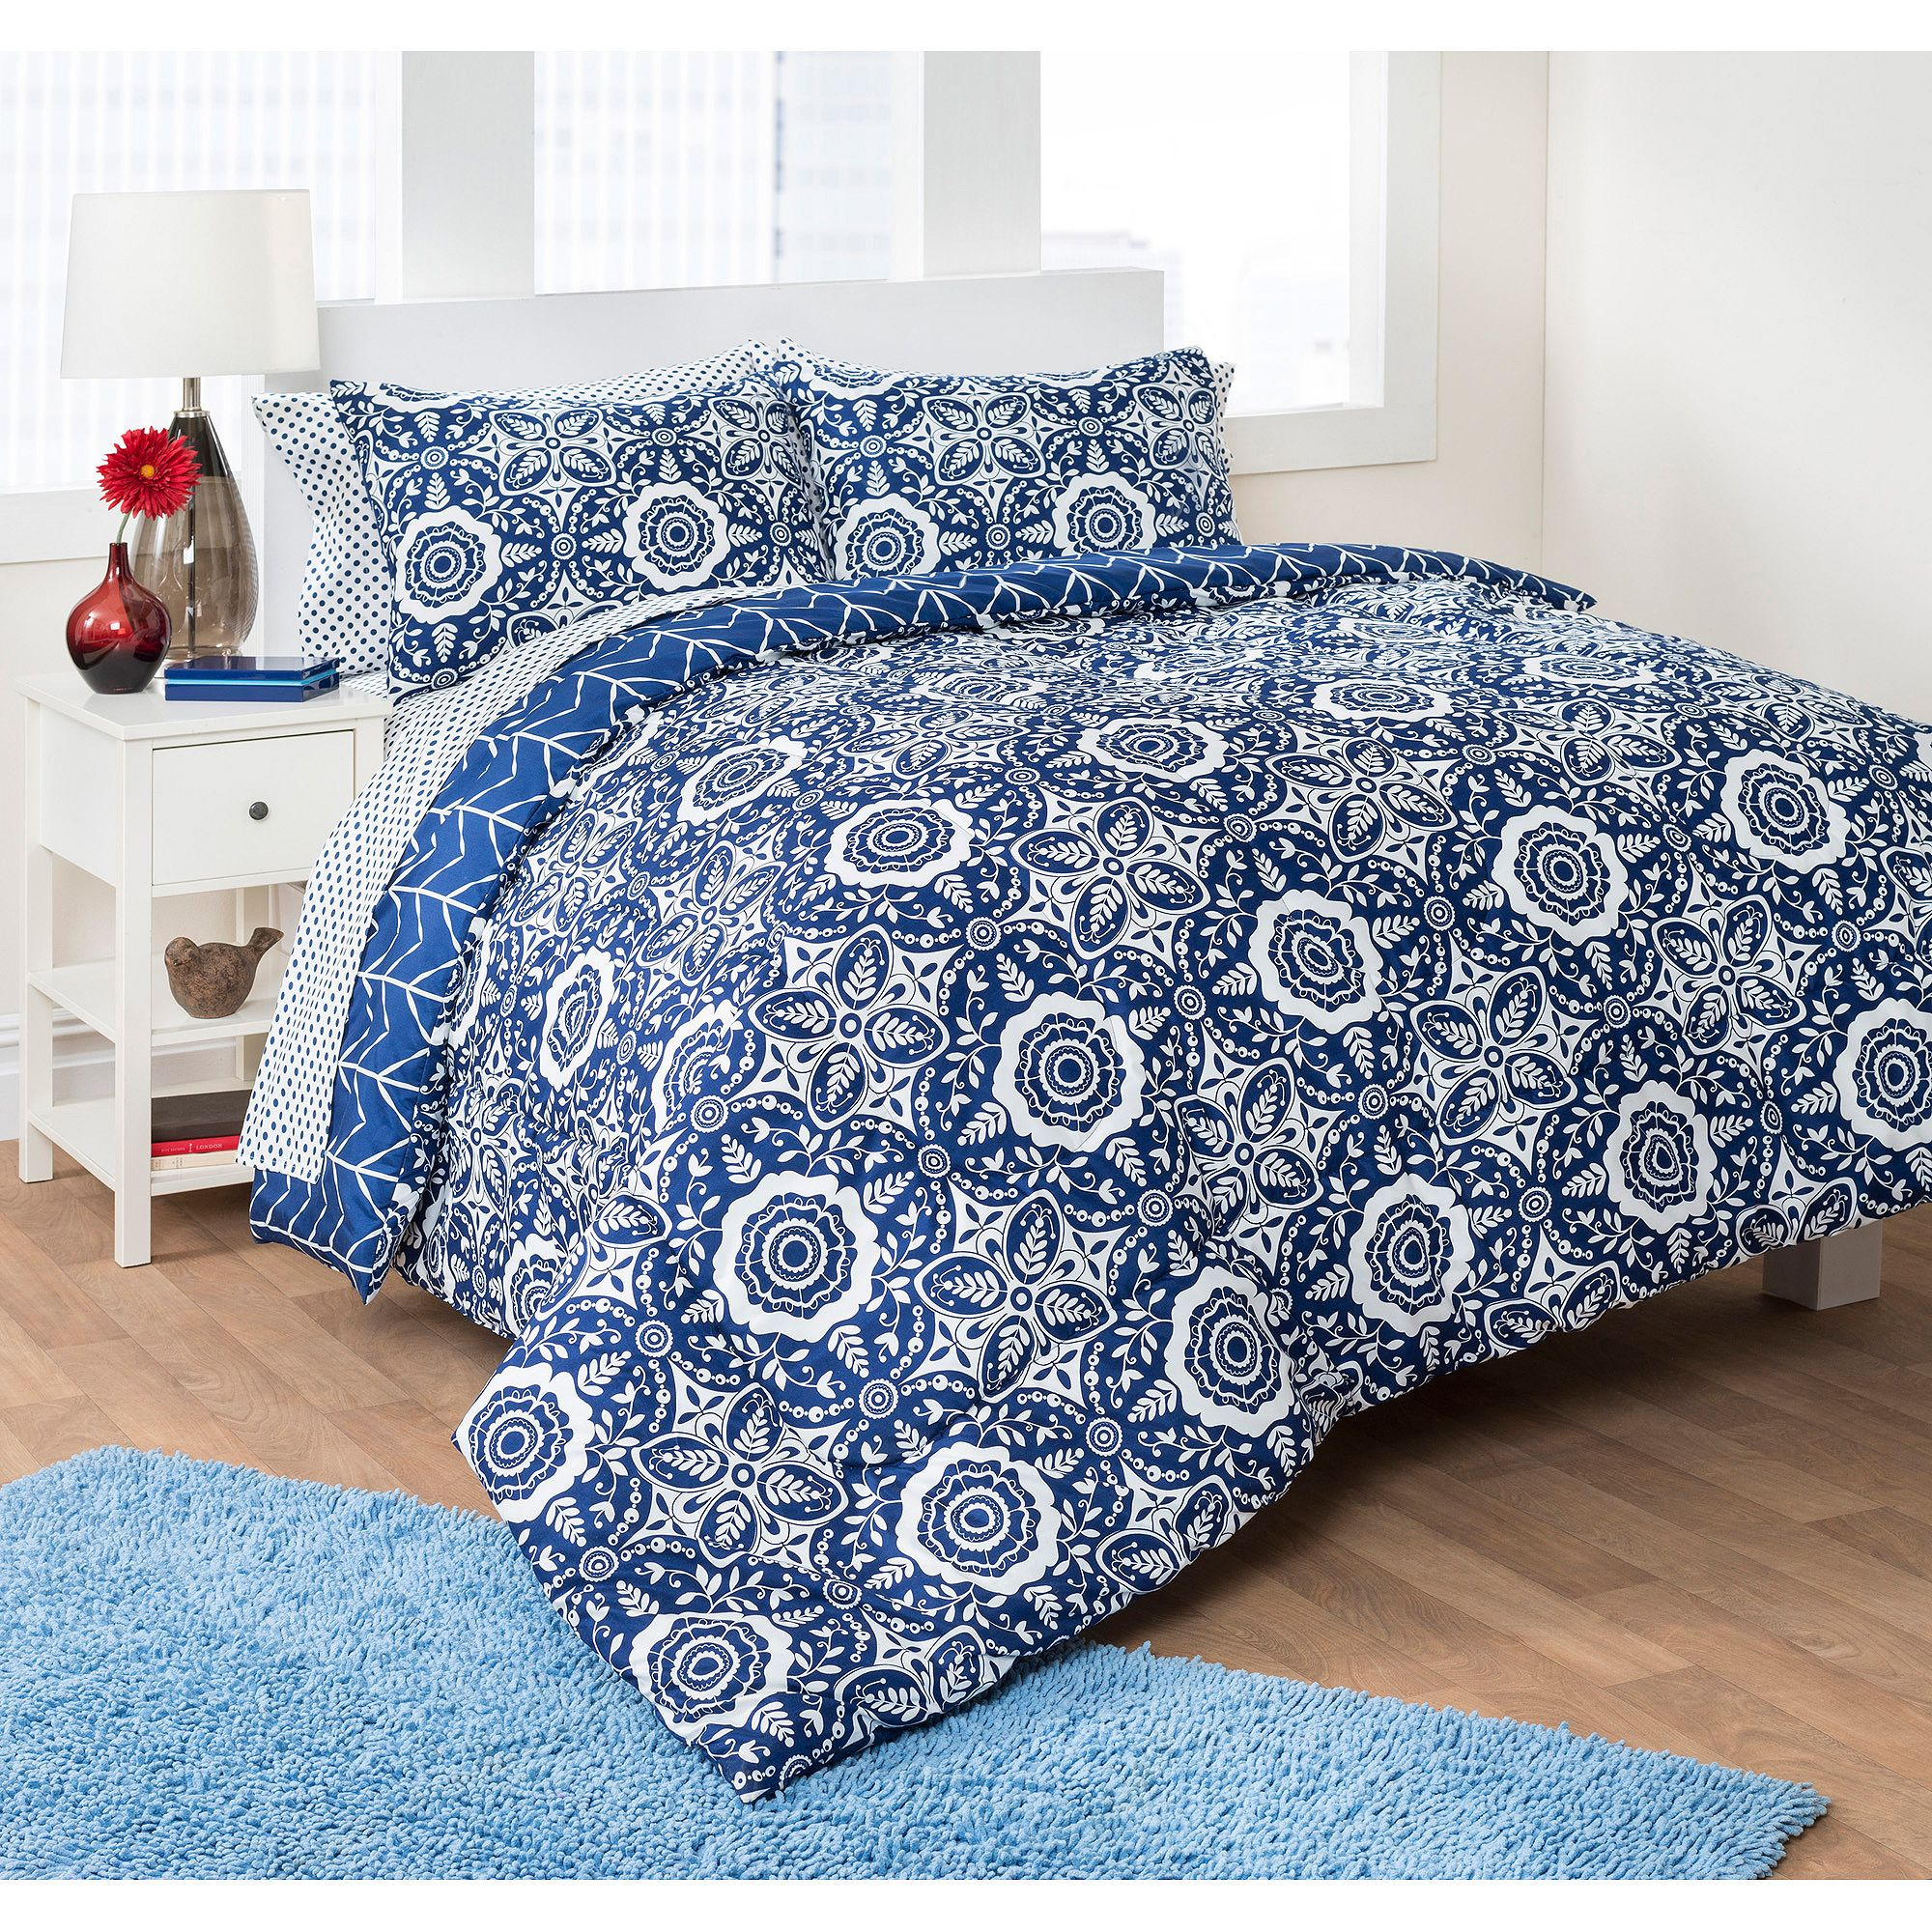 Formula Folklore Medallion Bed in a Bag Bedding Set